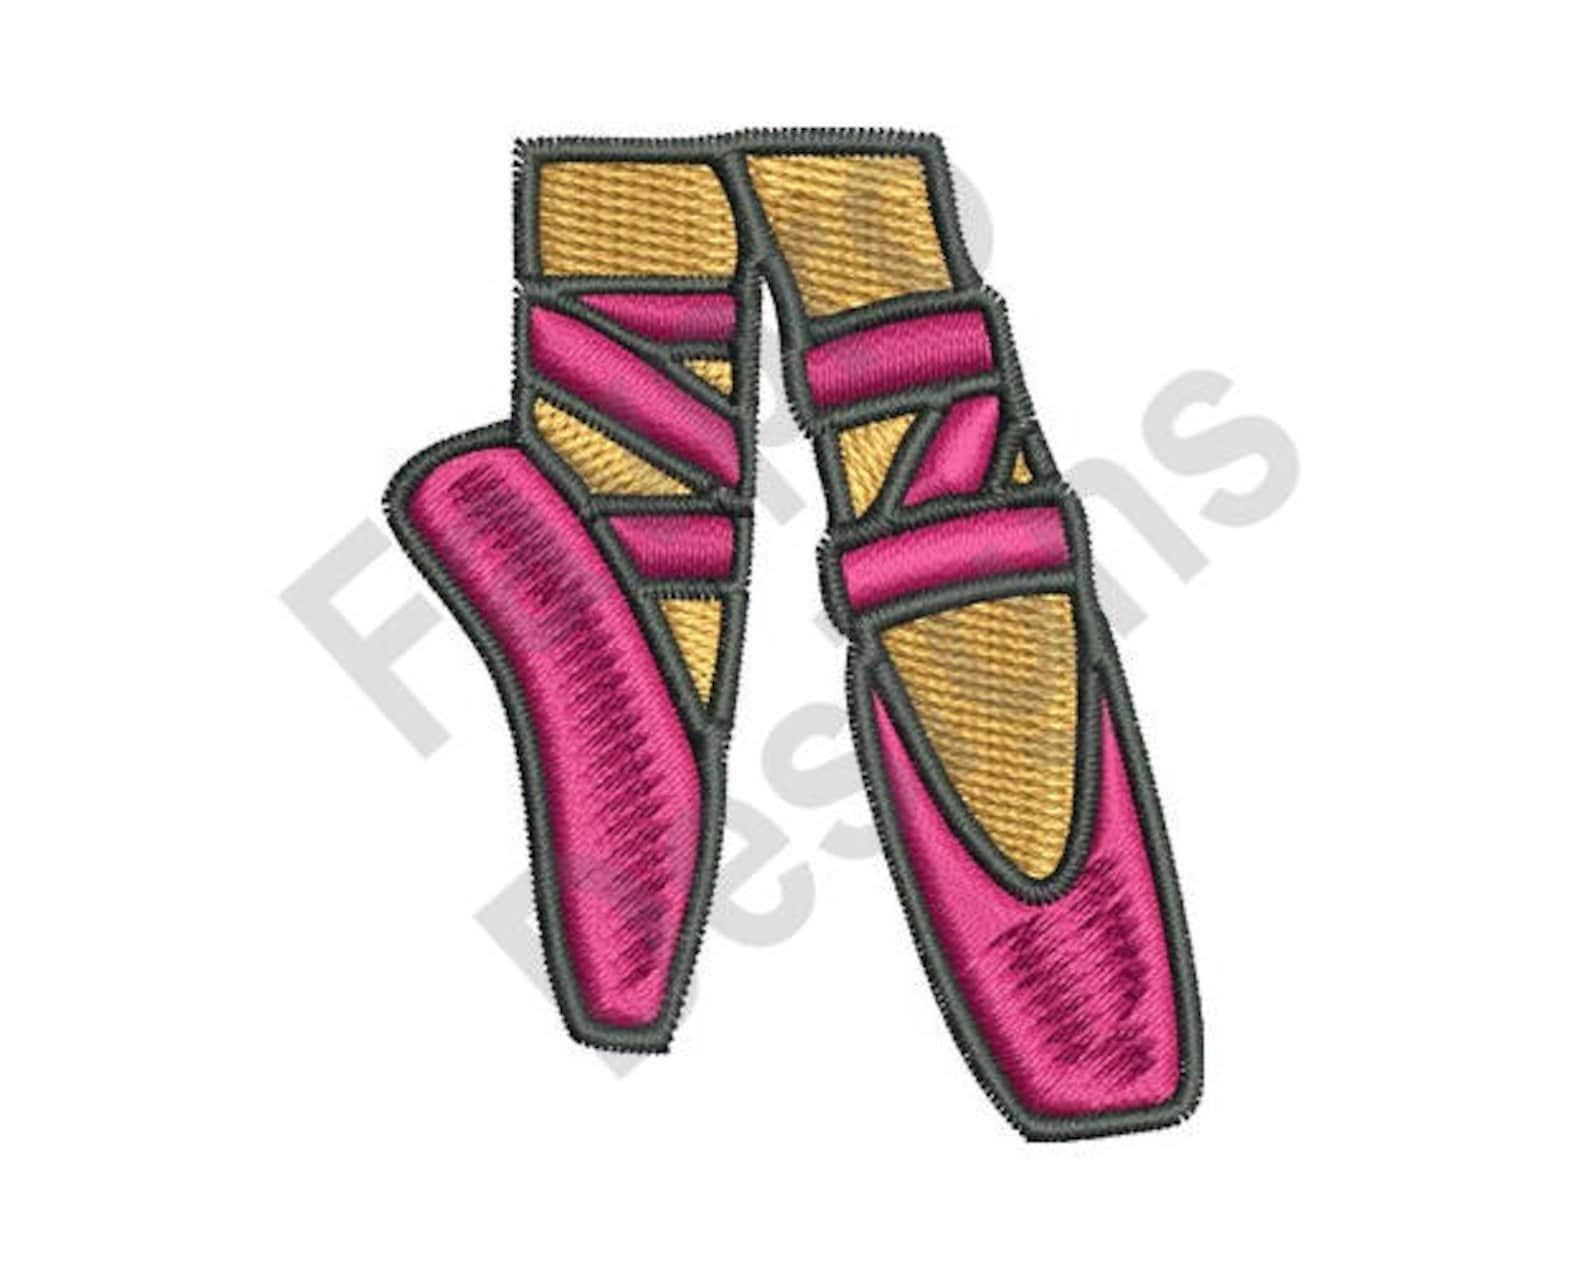 ballet shoes - machine embroidery design